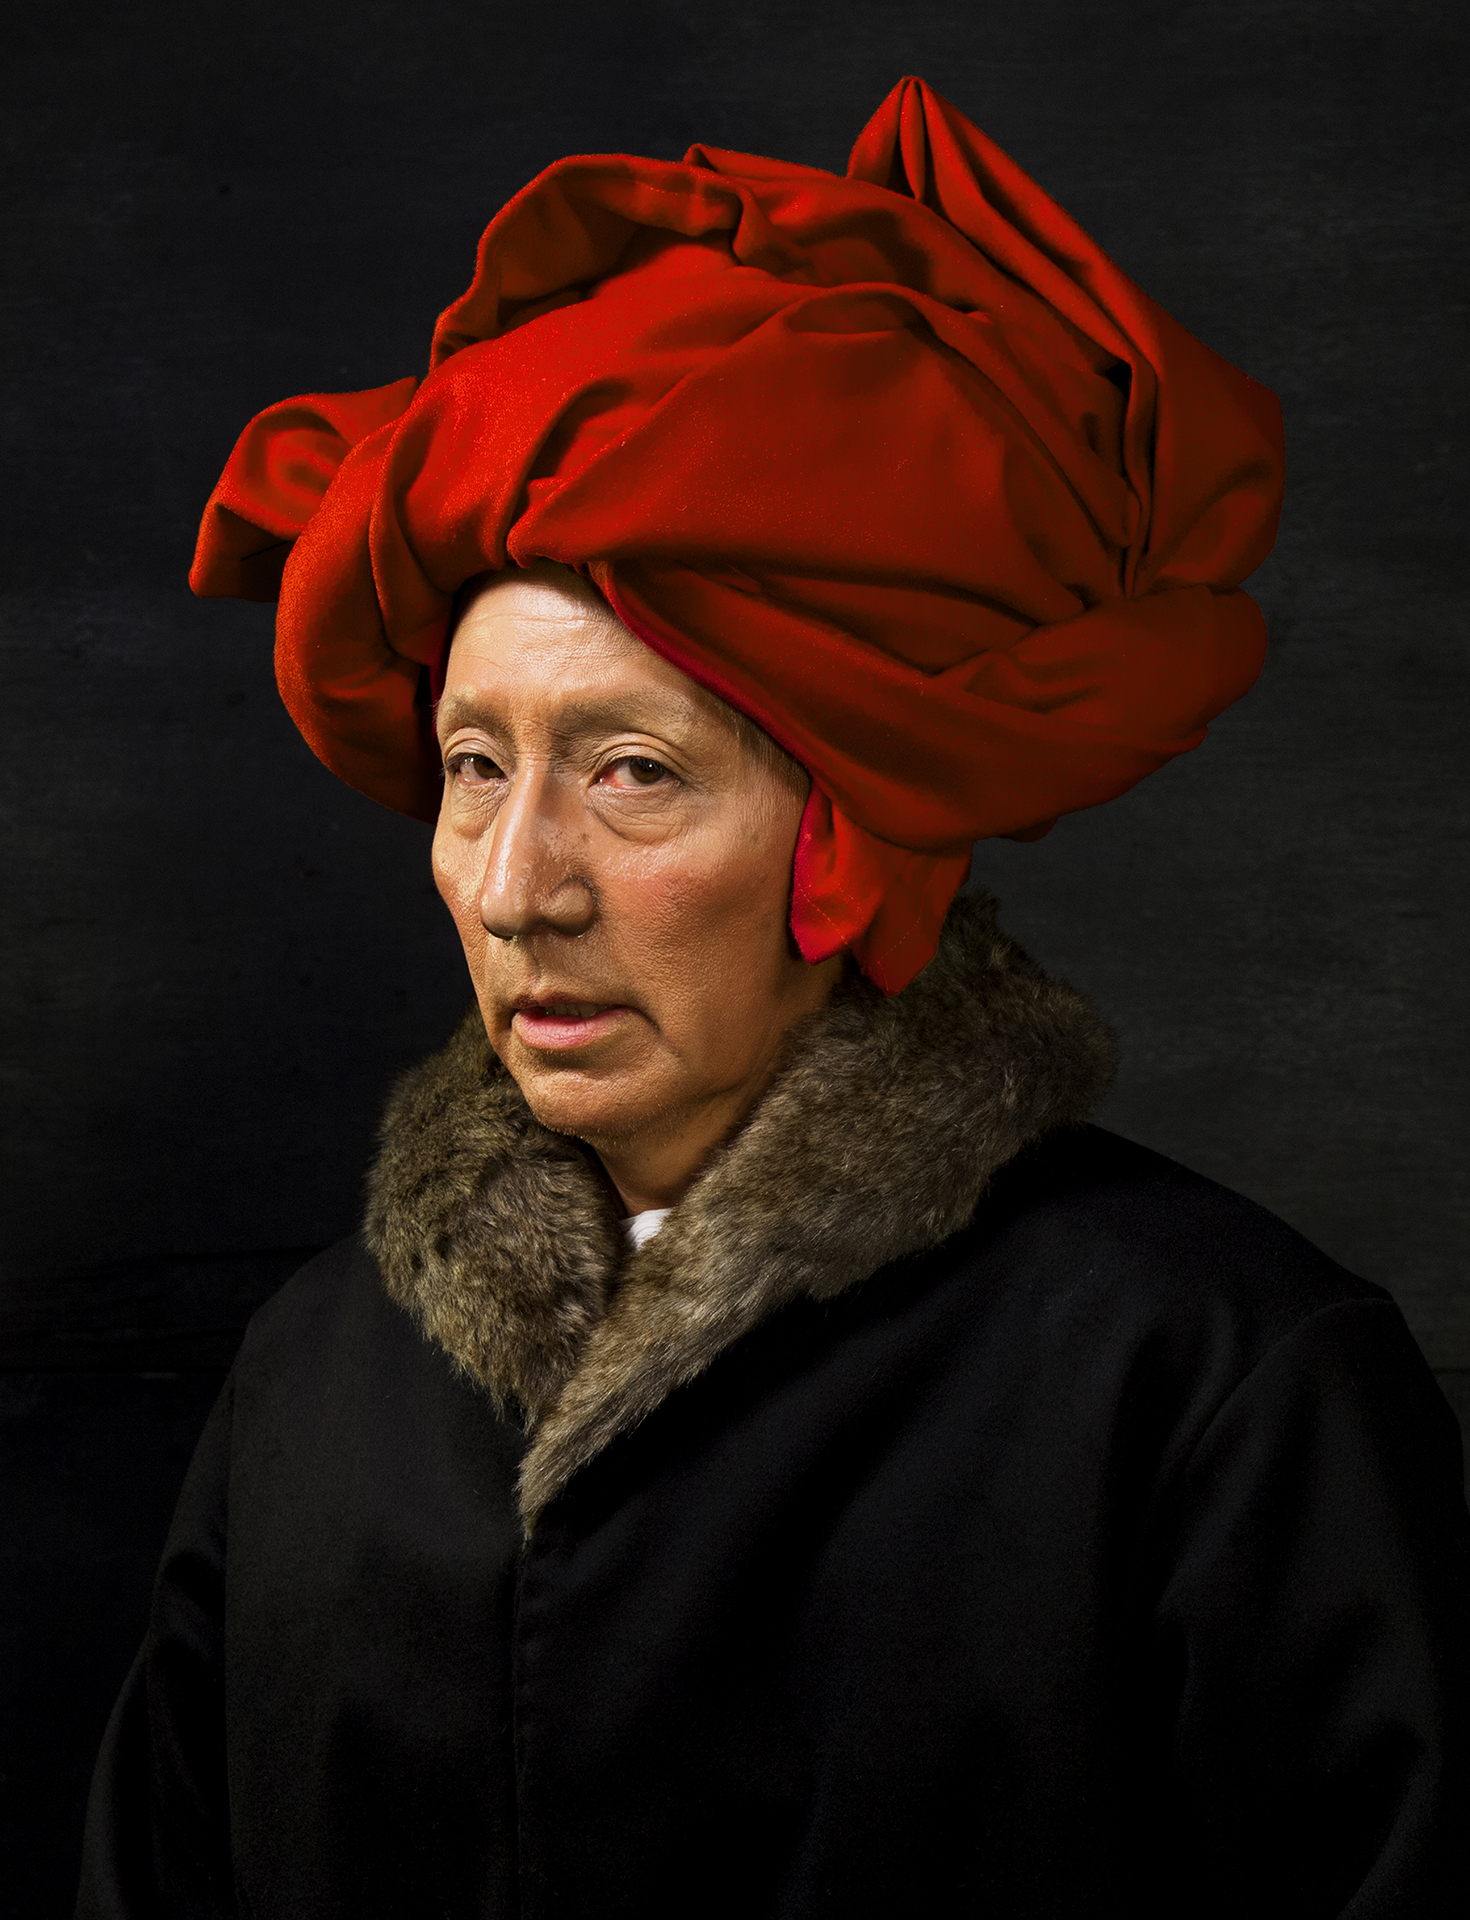 Self-Portraits through Art History (Van Eyck in a Red Turban), 2016. Courtesy of the artist and Luhring Augustine, New York. © Yasumasa Morimura